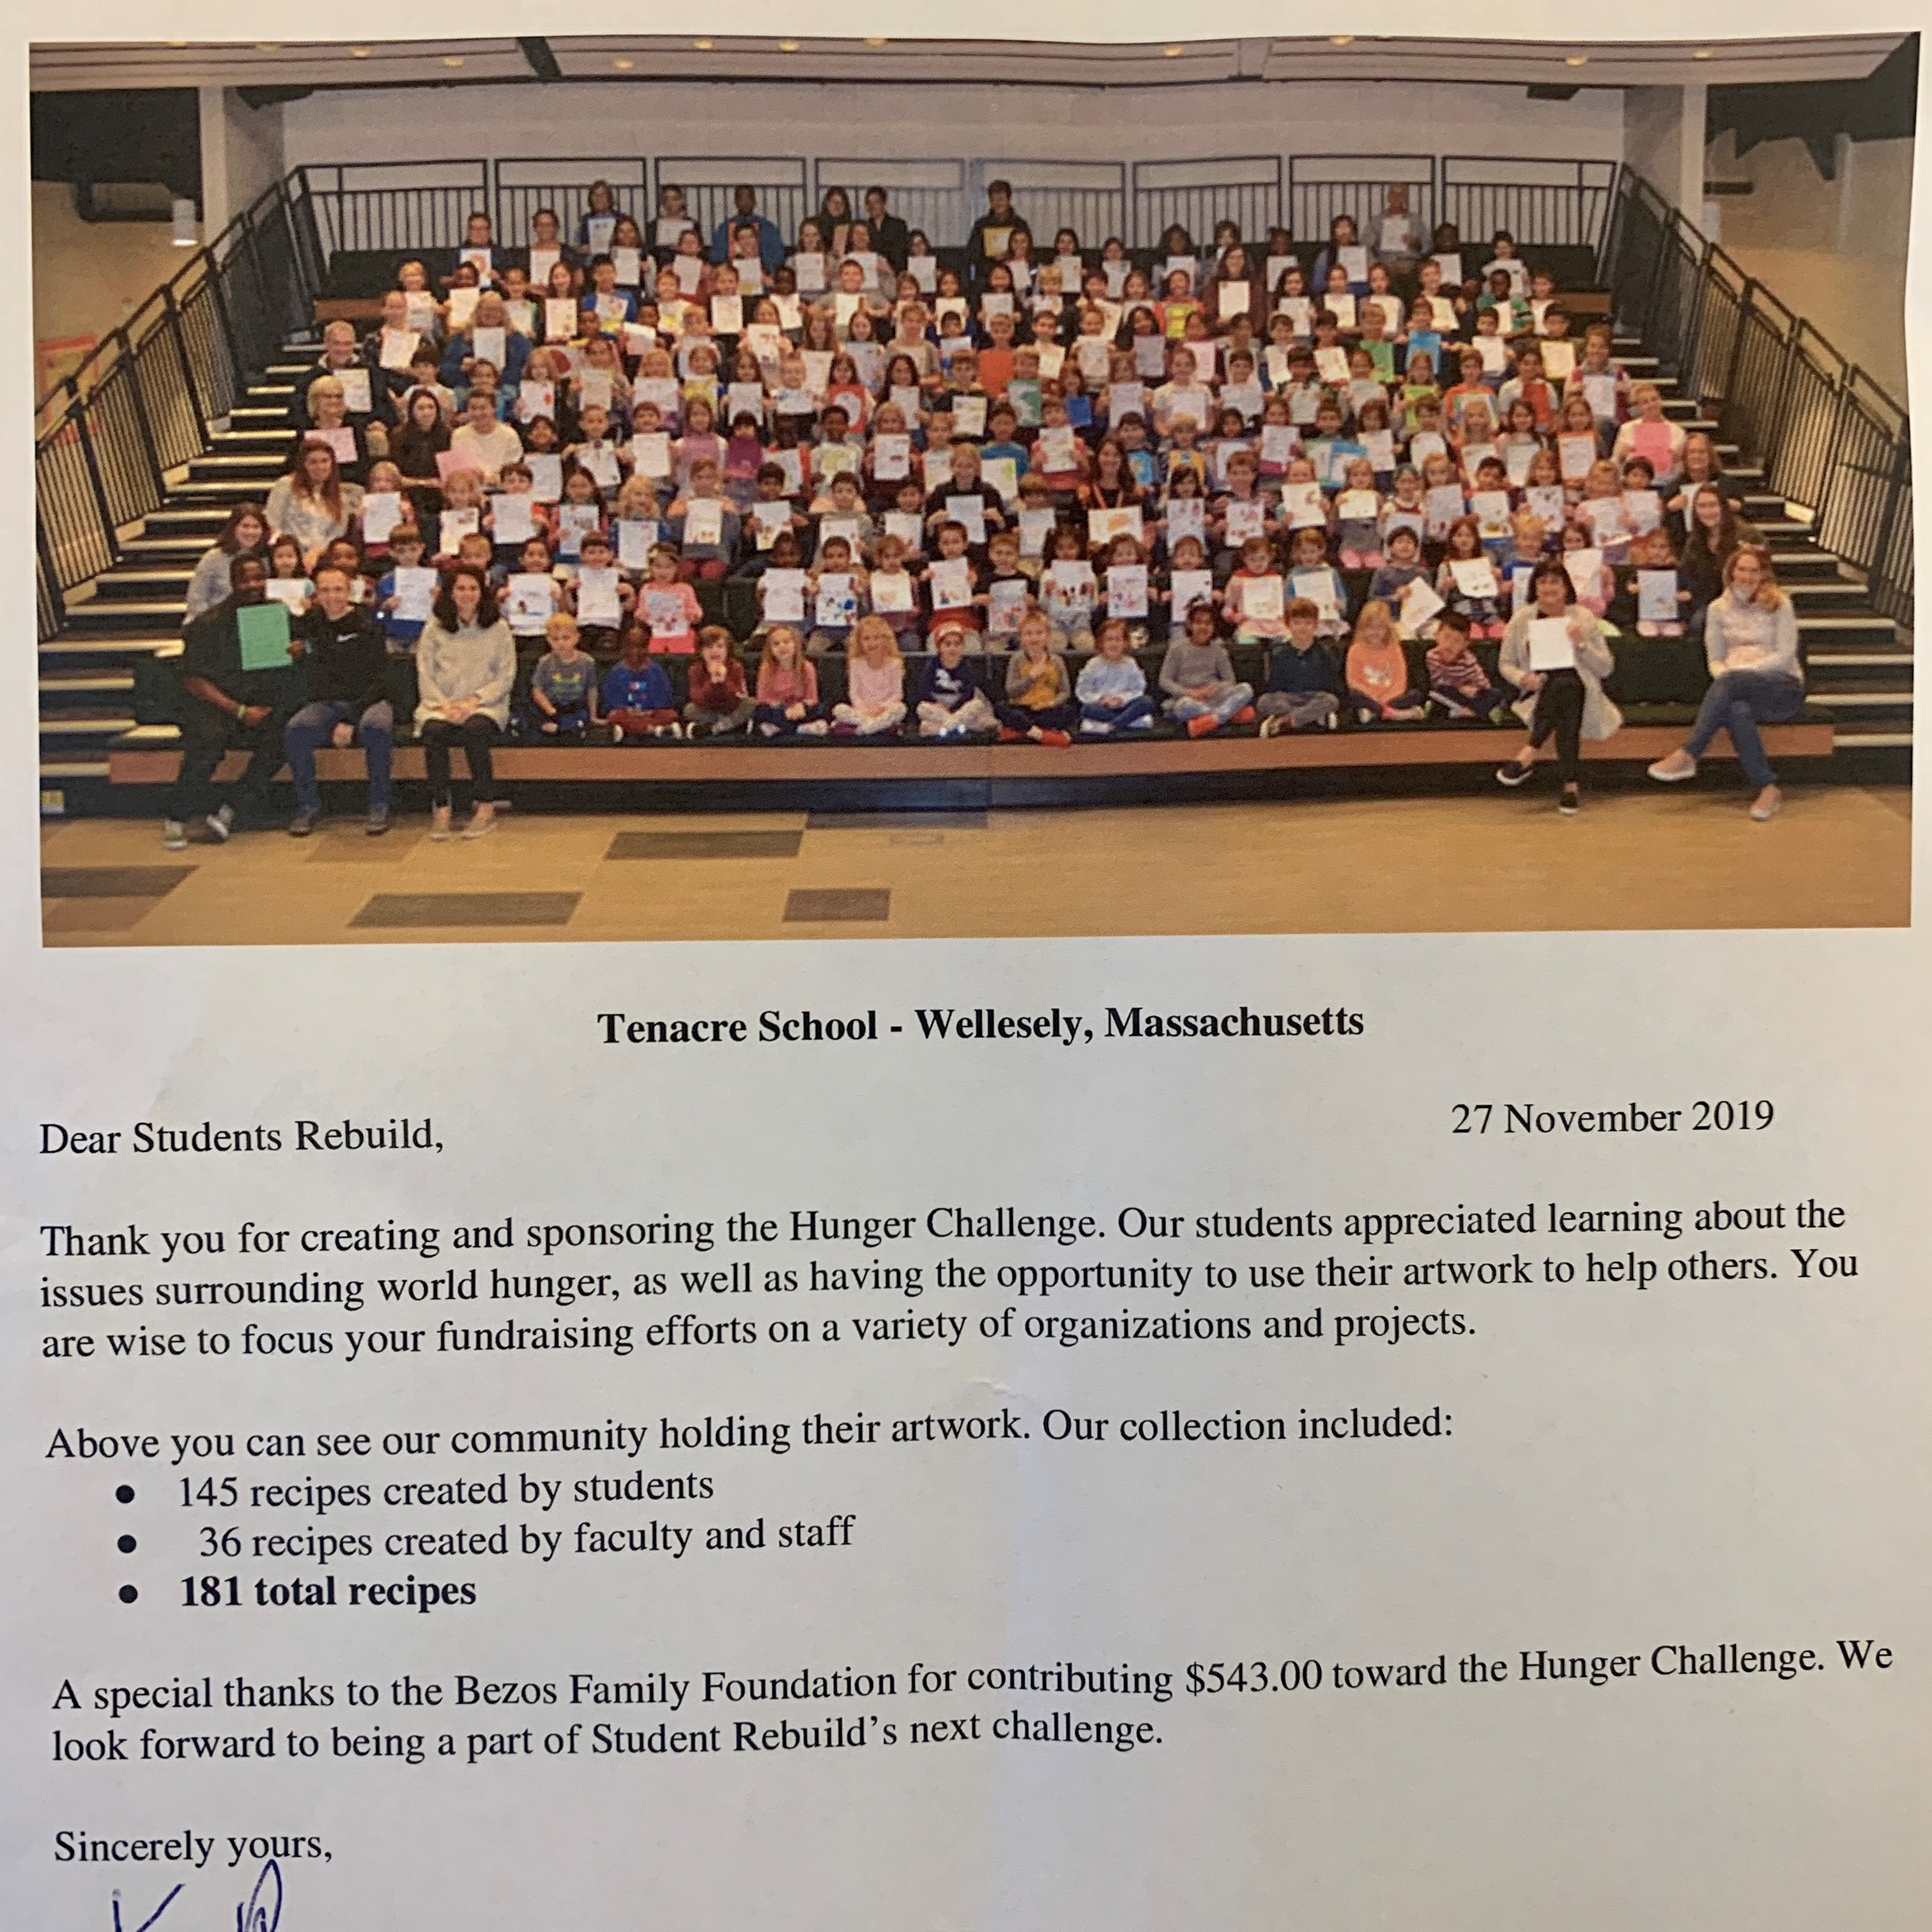 We love recieving your special notes and inspiration! This one is from Tenacre School in Massachusetts where students and staff made 181 recipes!